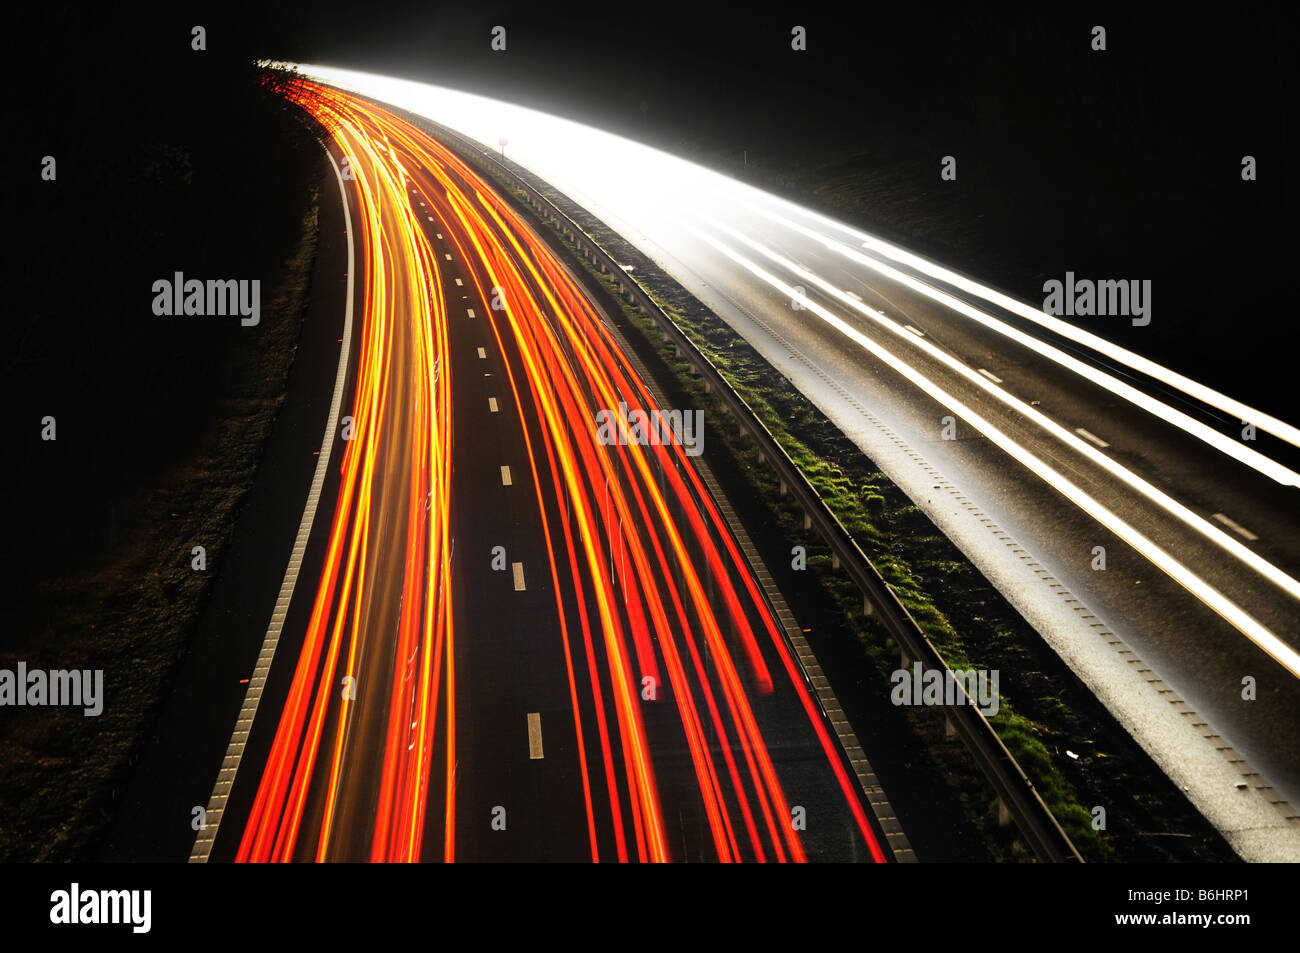 Traffic tail lights 'Long Exposure' at night - Stock Image